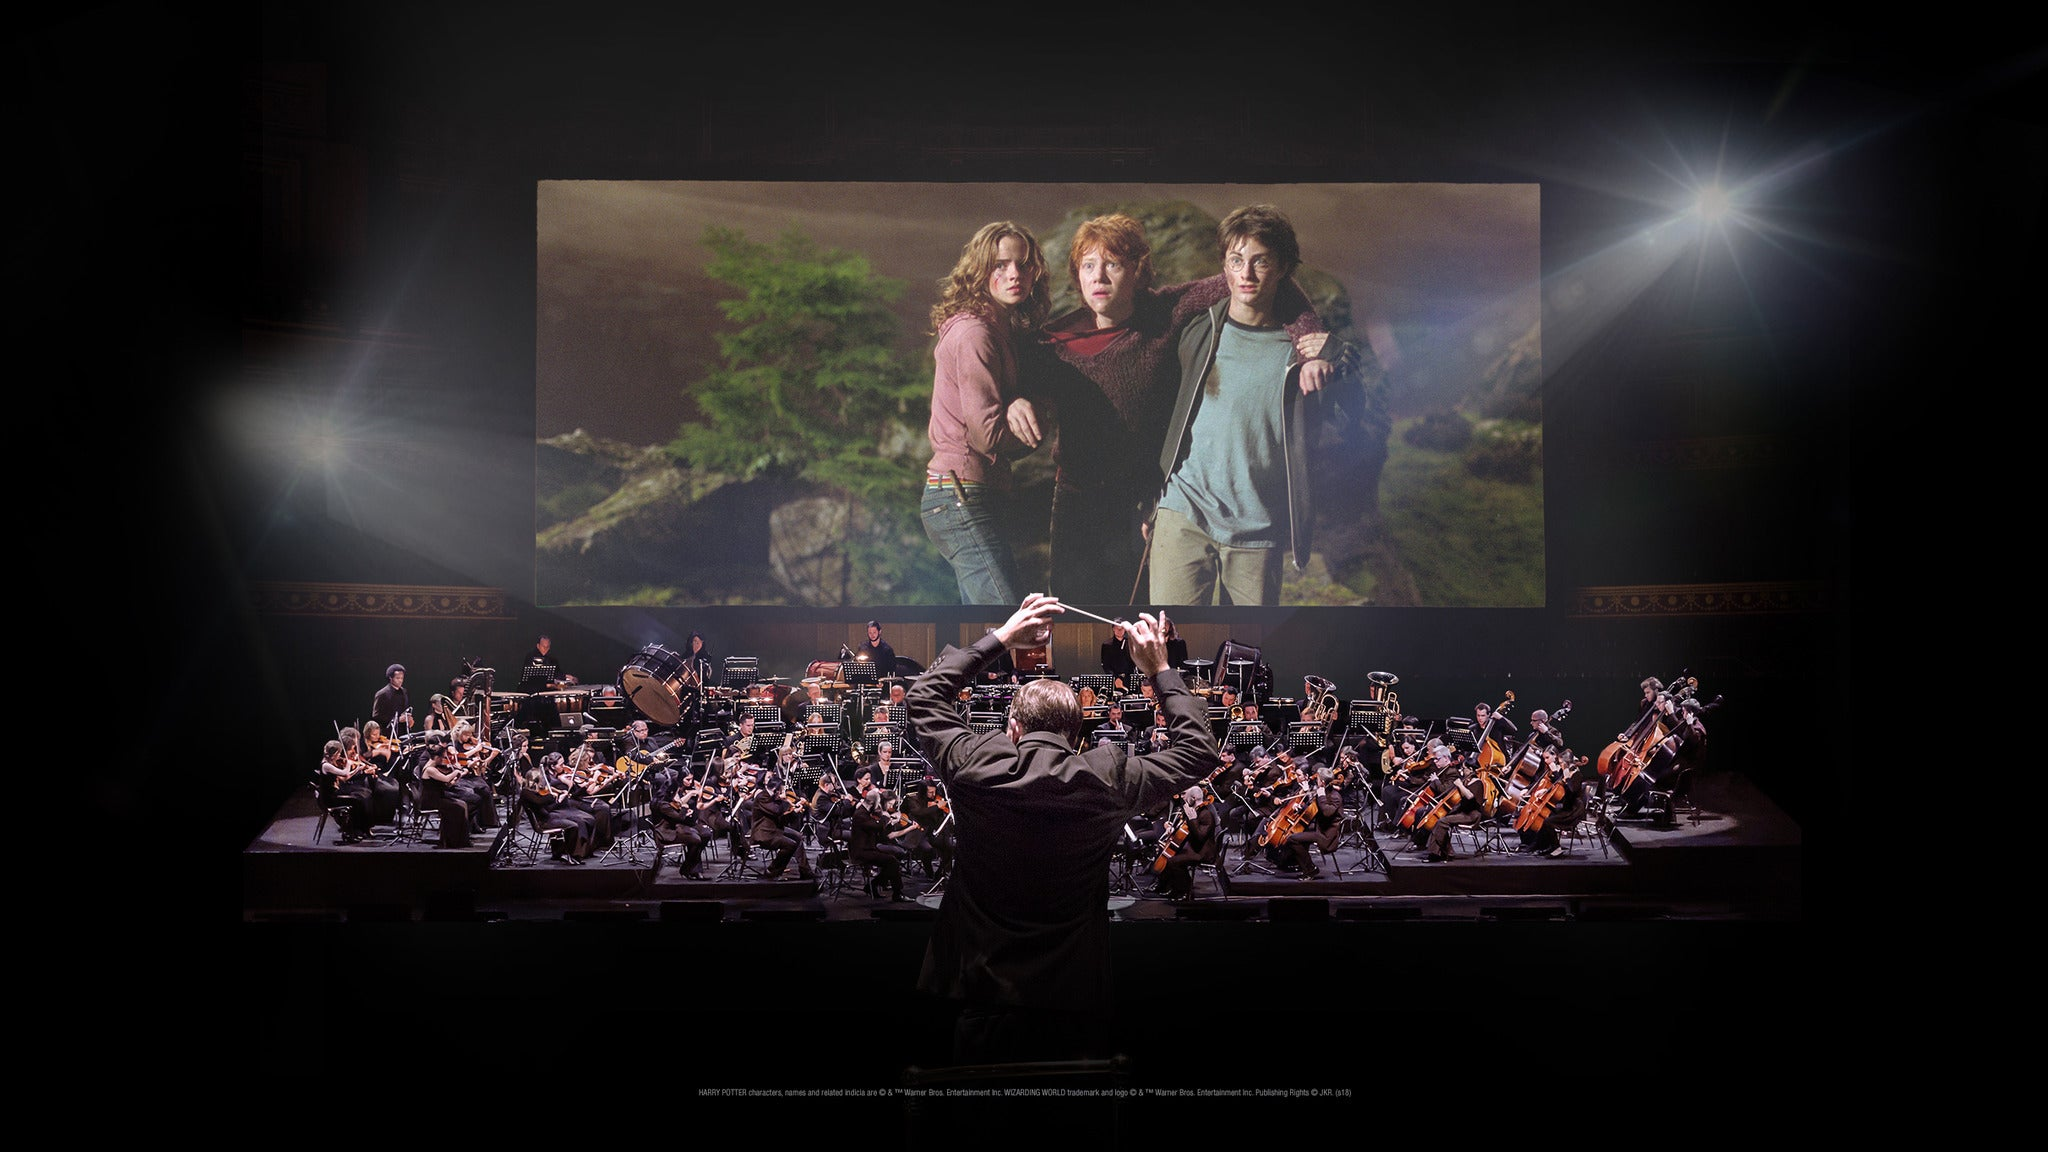 Harry Potter and Order of the Phoenix in Concert